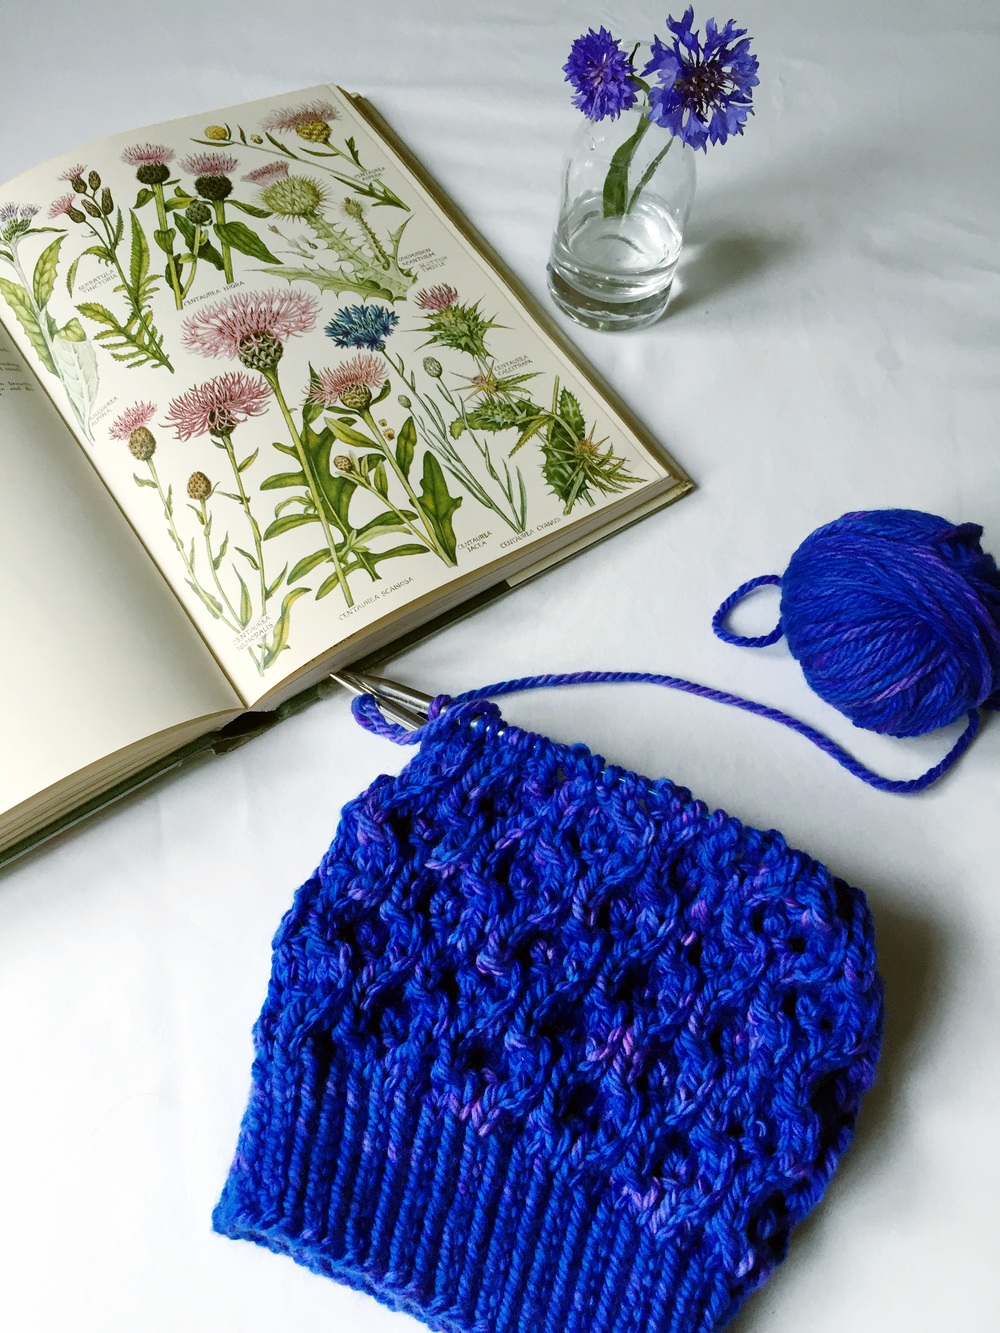 August wips&blooms- Cornflowers, 'The Concise British Flora in Colour' & 'Lapsang' by Clare Devine using GingerTwistStudios.